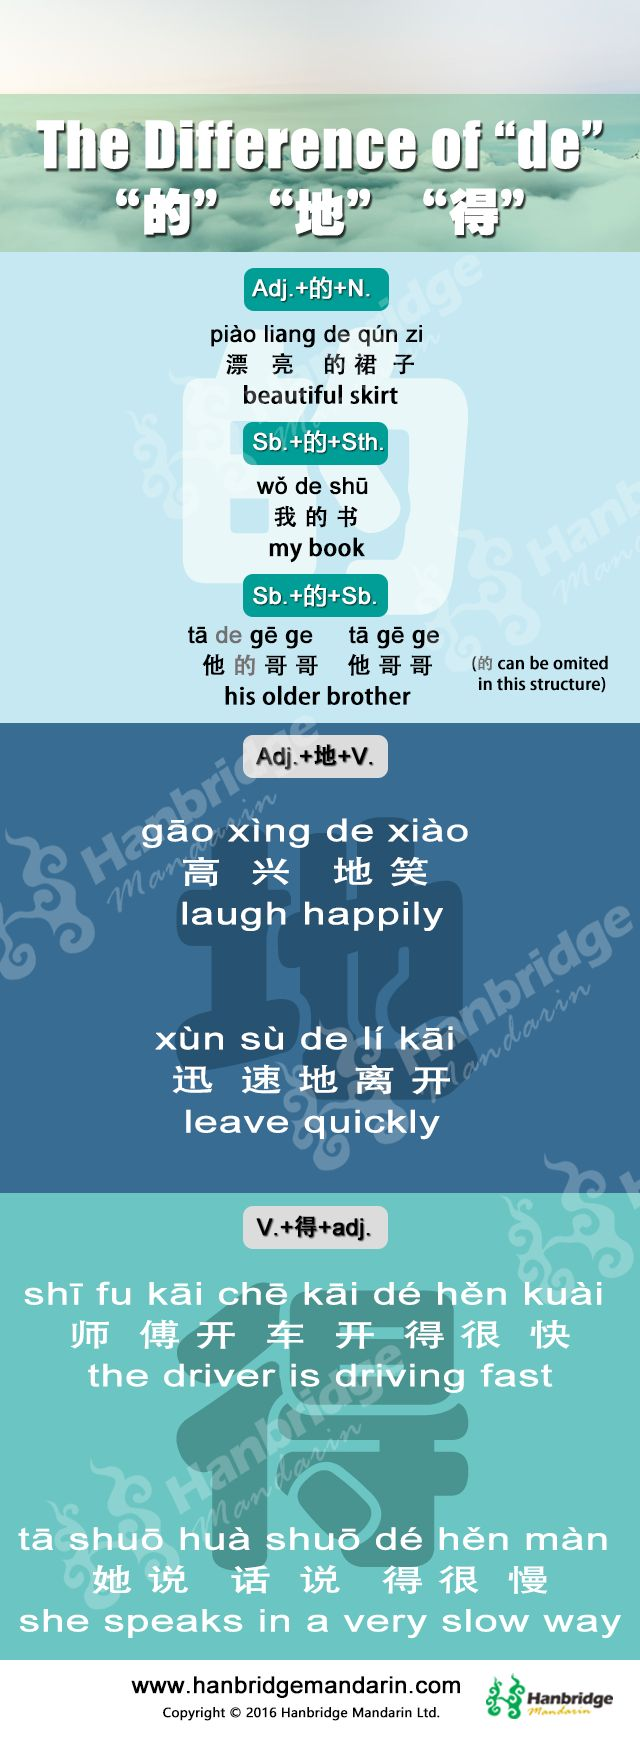 The Chinese HSK common grammar: what is the different between 的地得.